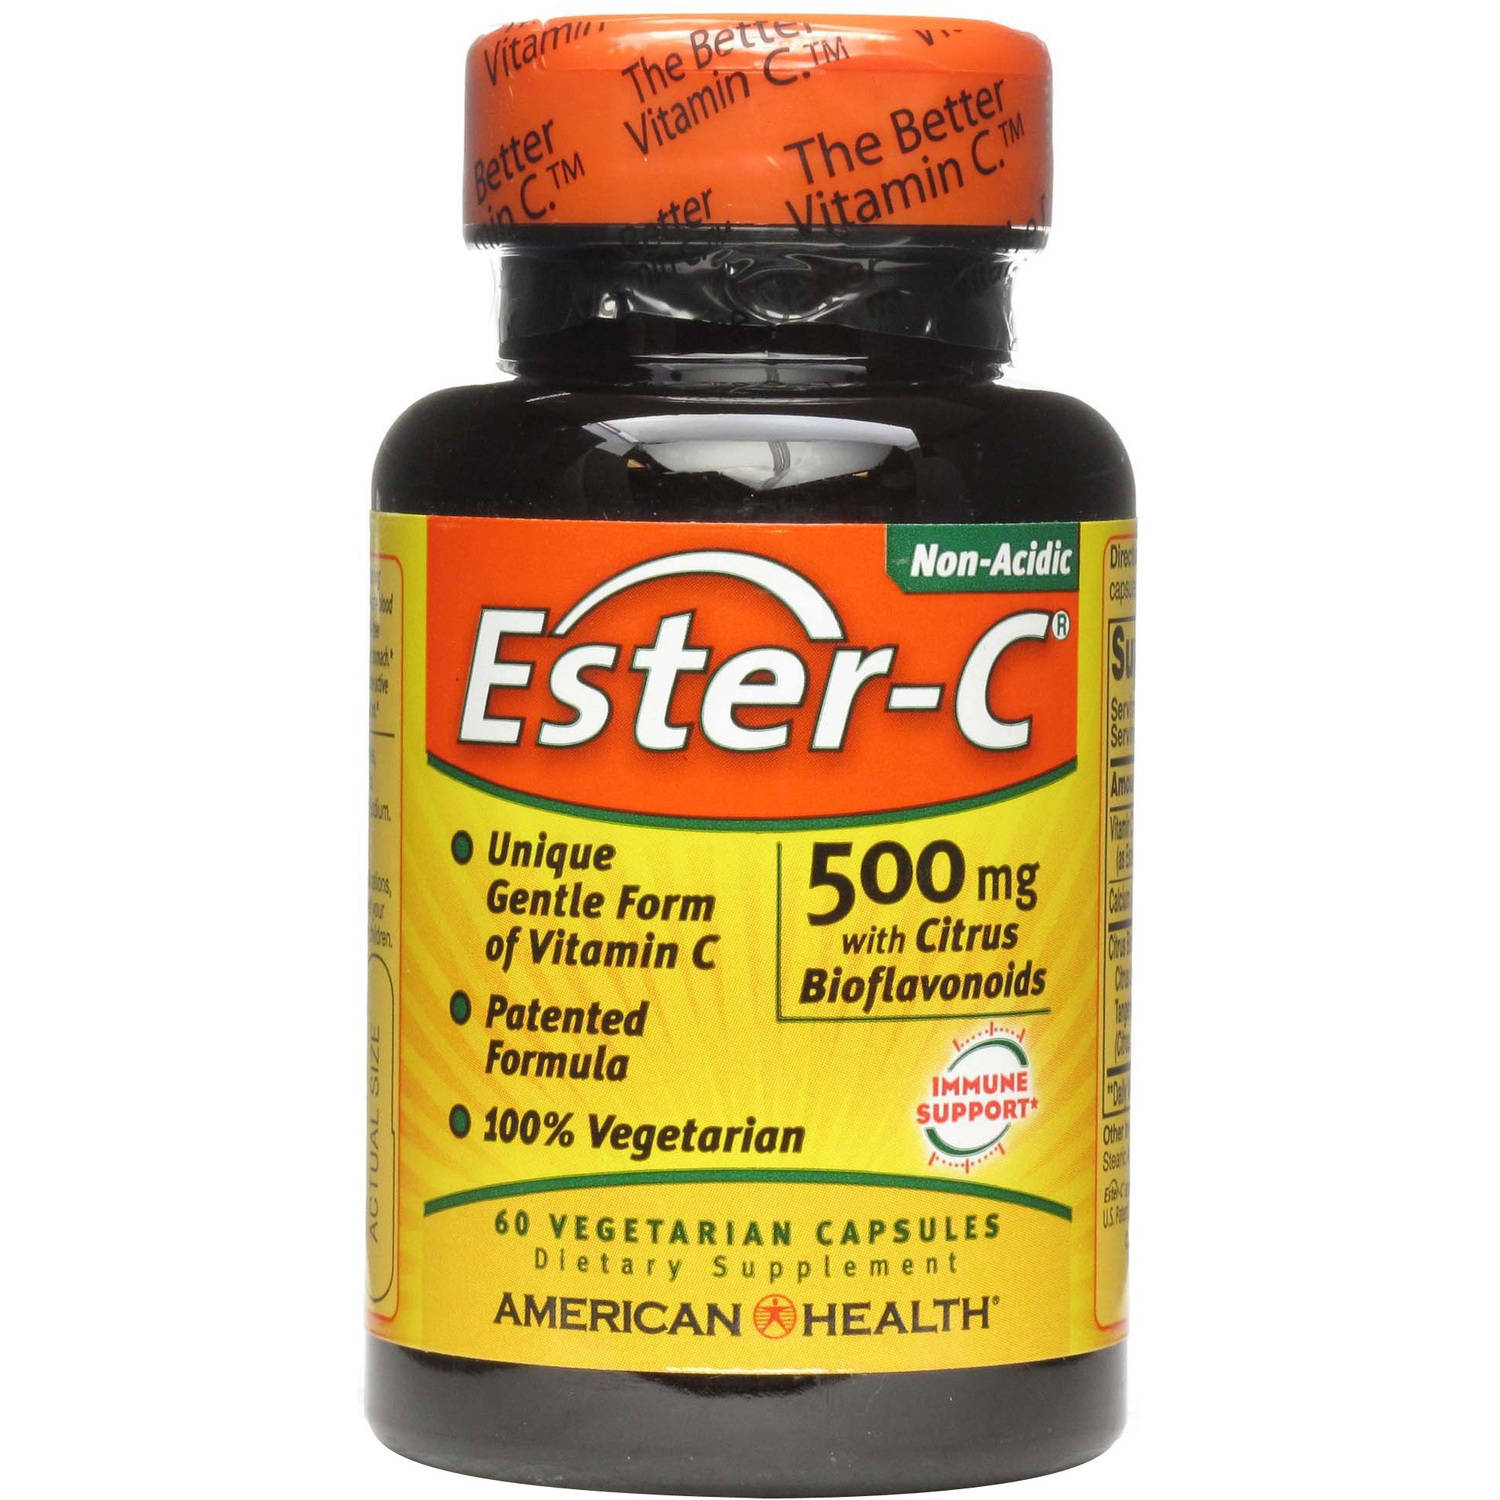 American Health Ester-C Dietary Supplement Vegetarian Tablets, 500mg with Citrus Bioflavonolds, 60 CT